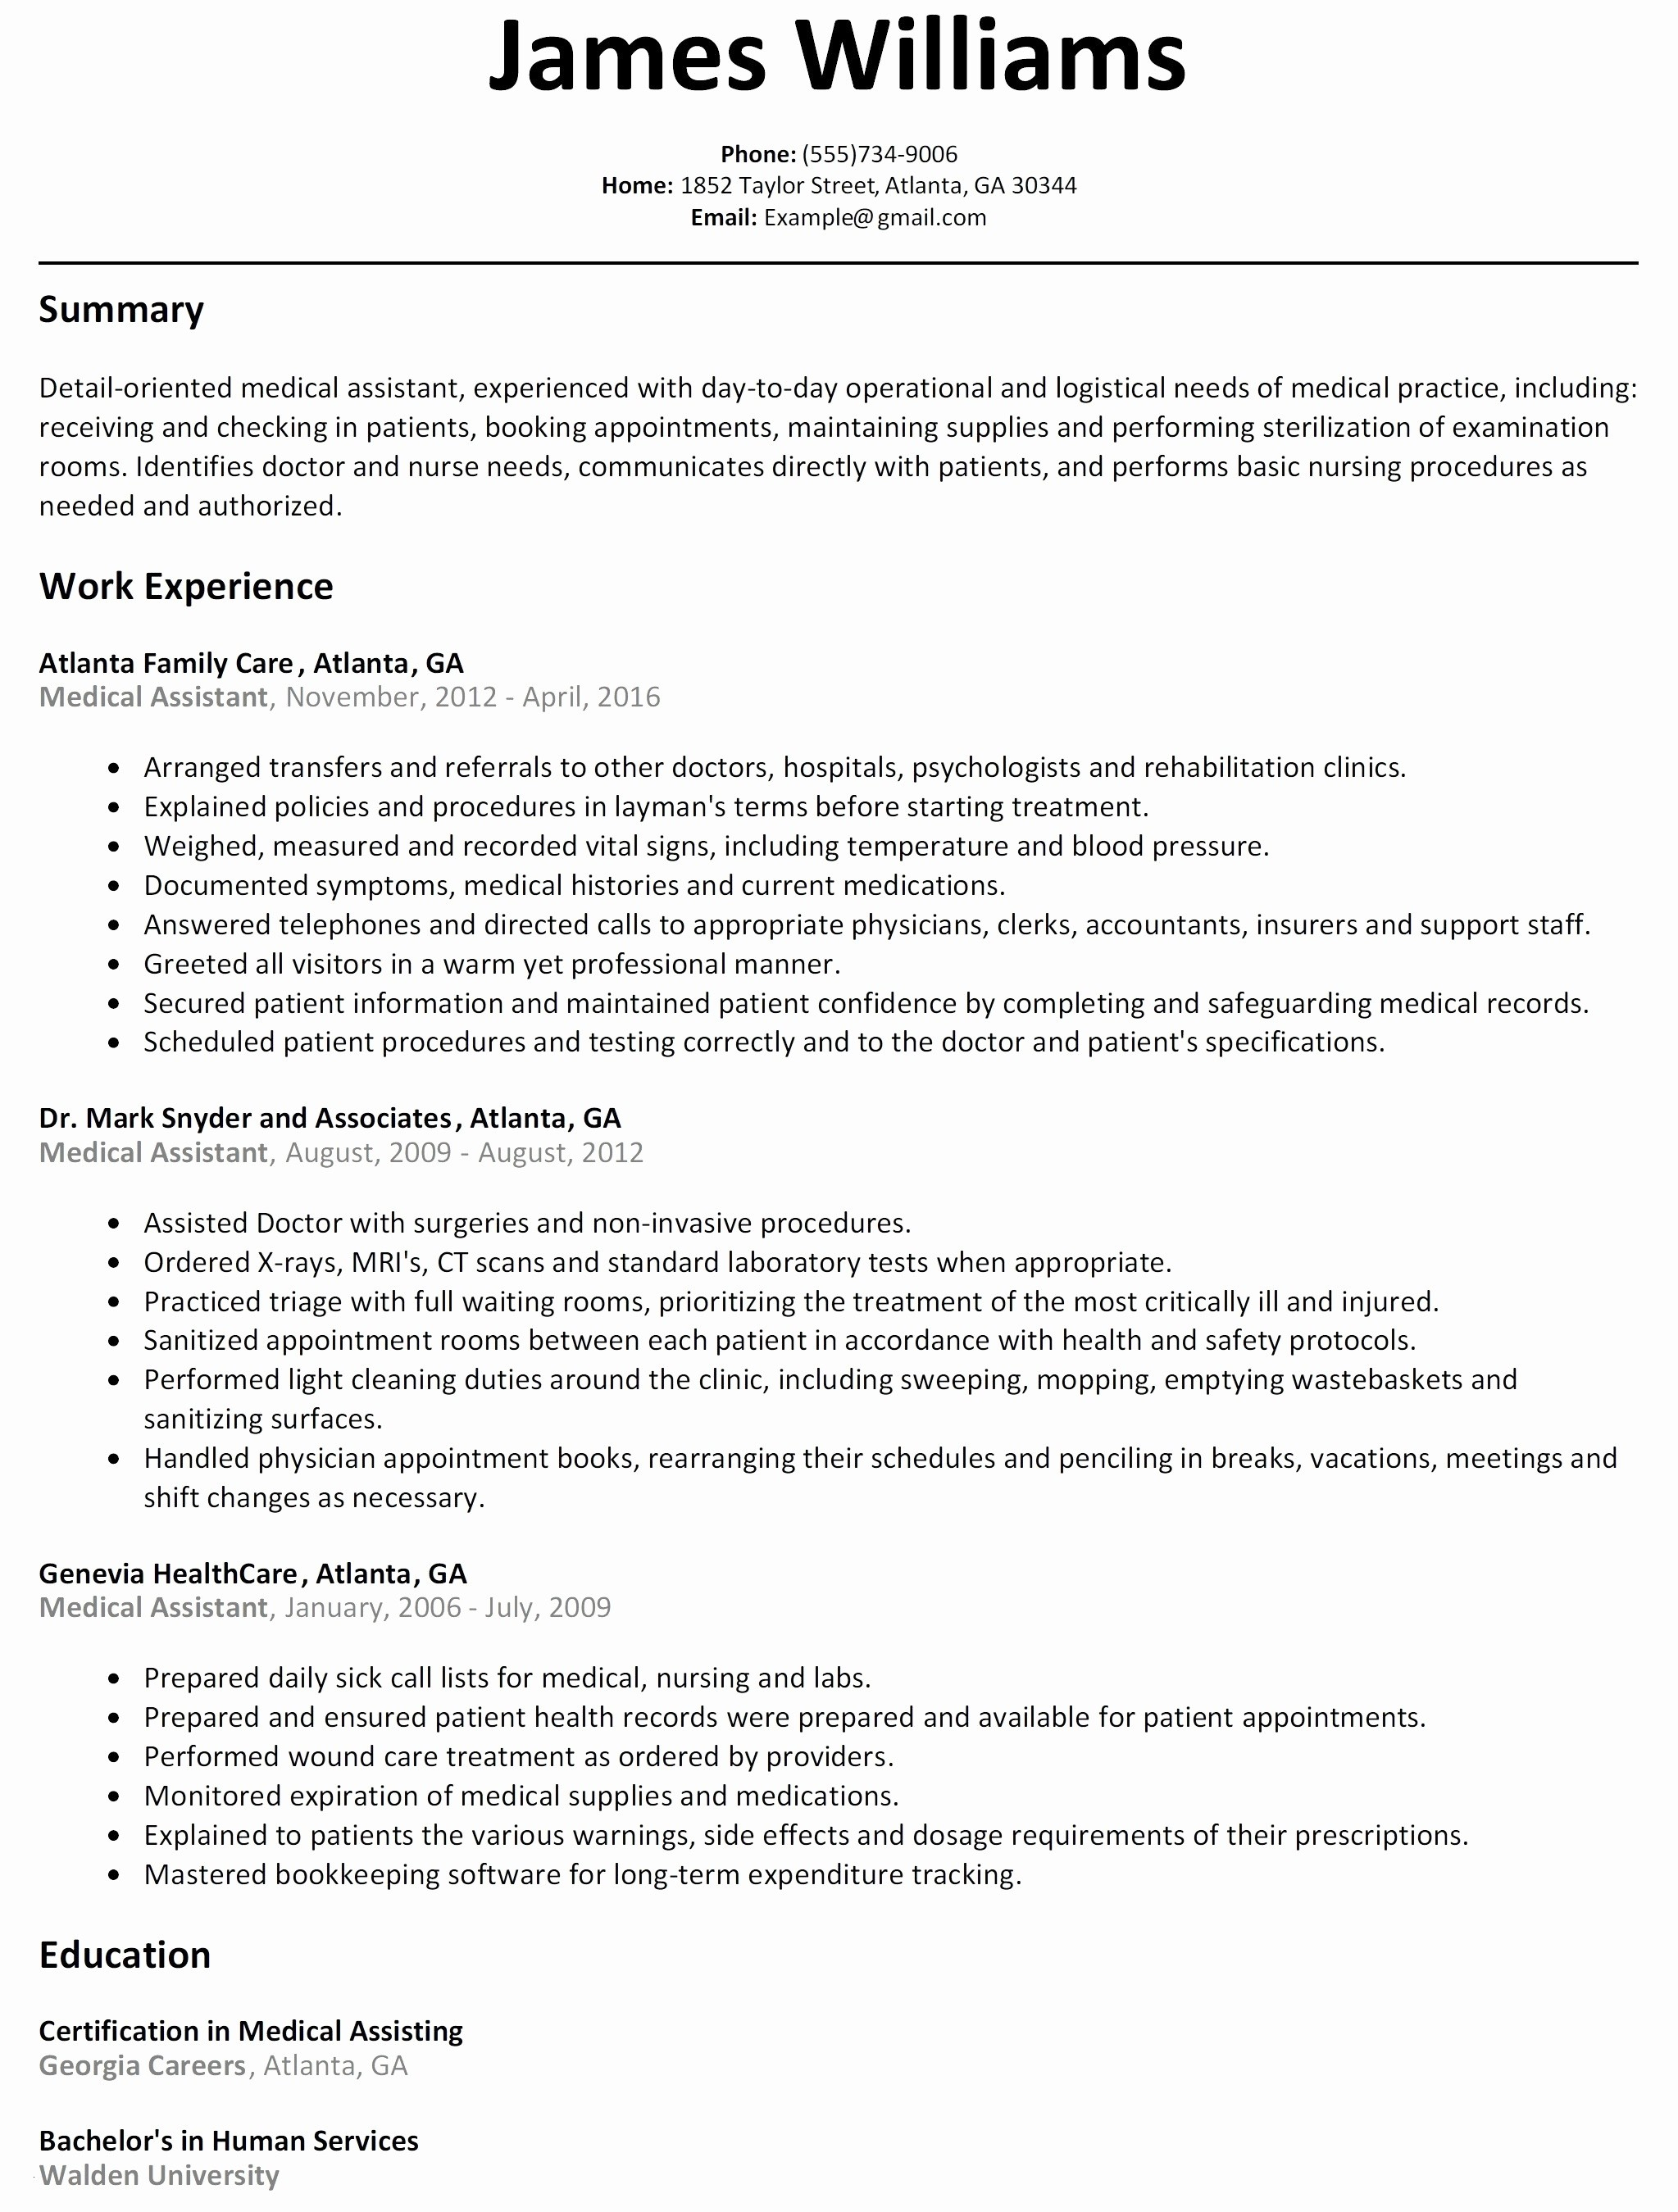 Teaching assistant Resume Template - 25 Beautiful Executive assistant Resumes